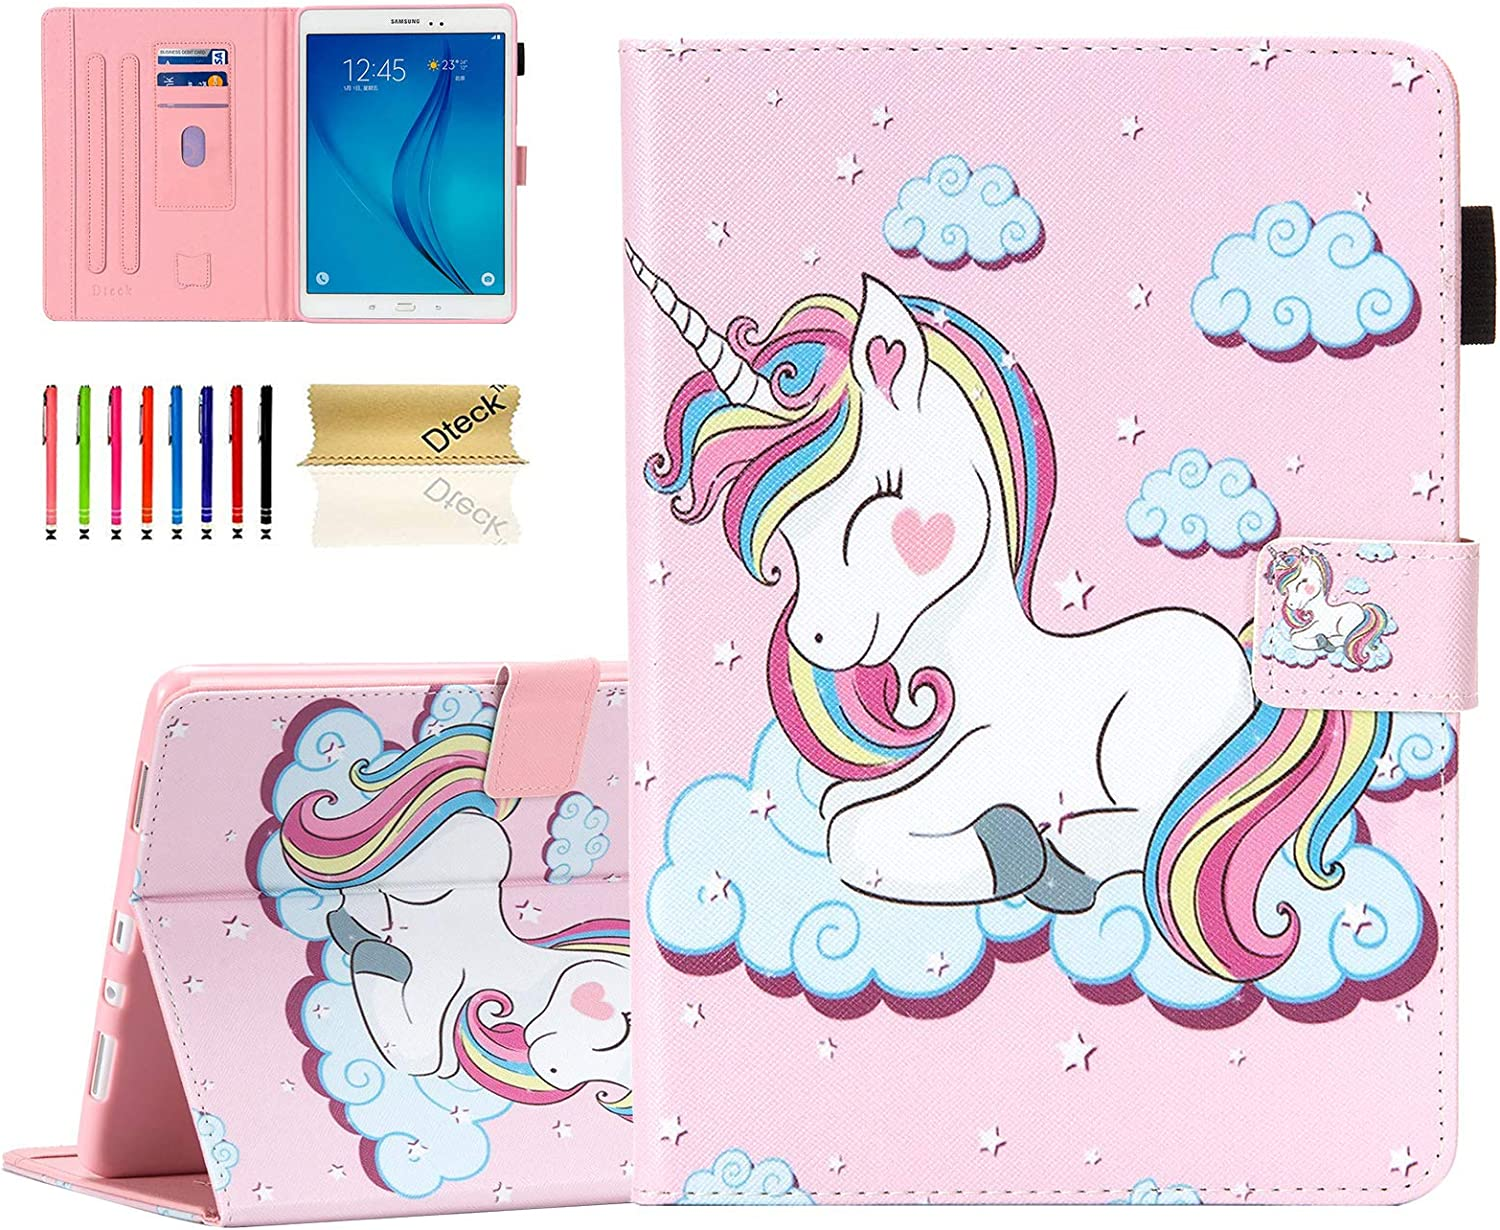 Dteck 8.0-8.4 Inch Display Universal Case Slim Leather Wallet Cute Cover for HD 8/ Samsung Galaxy Tab/Lenovo Tab/Dragon Touch/LG G Pad/Huawei/Onn/Android Tablet 8 8.3 8.4 Inch (Smile Unicorn)